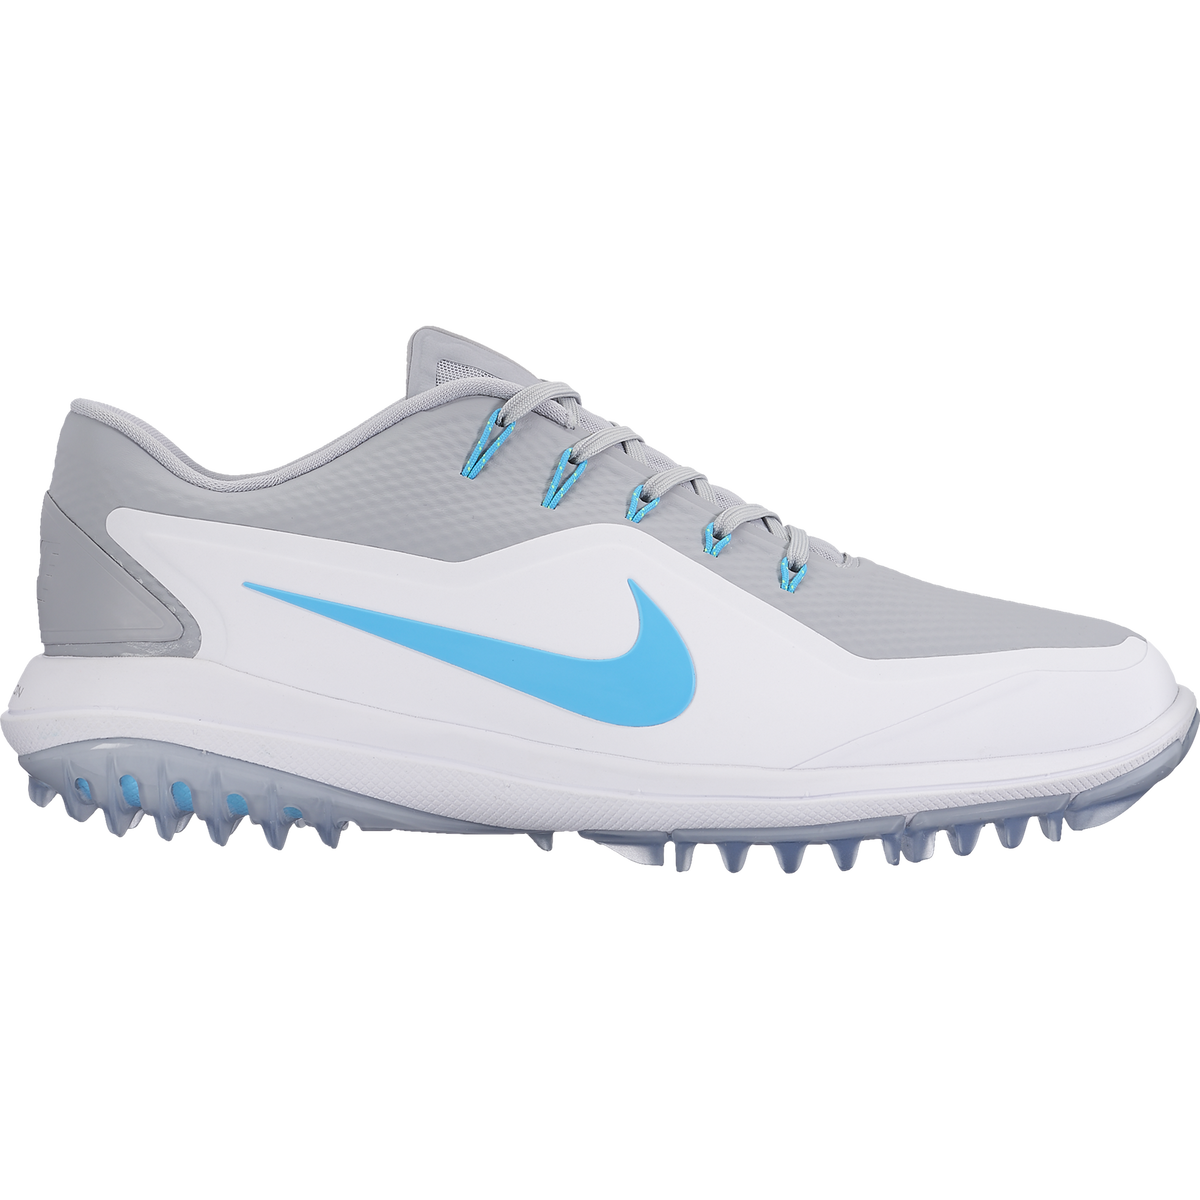 best sneakers 3214f e9ff9 Nike Lunar Control Vapor 2 Men  39 s Golf Shoe - Grey Blue Zoom Image